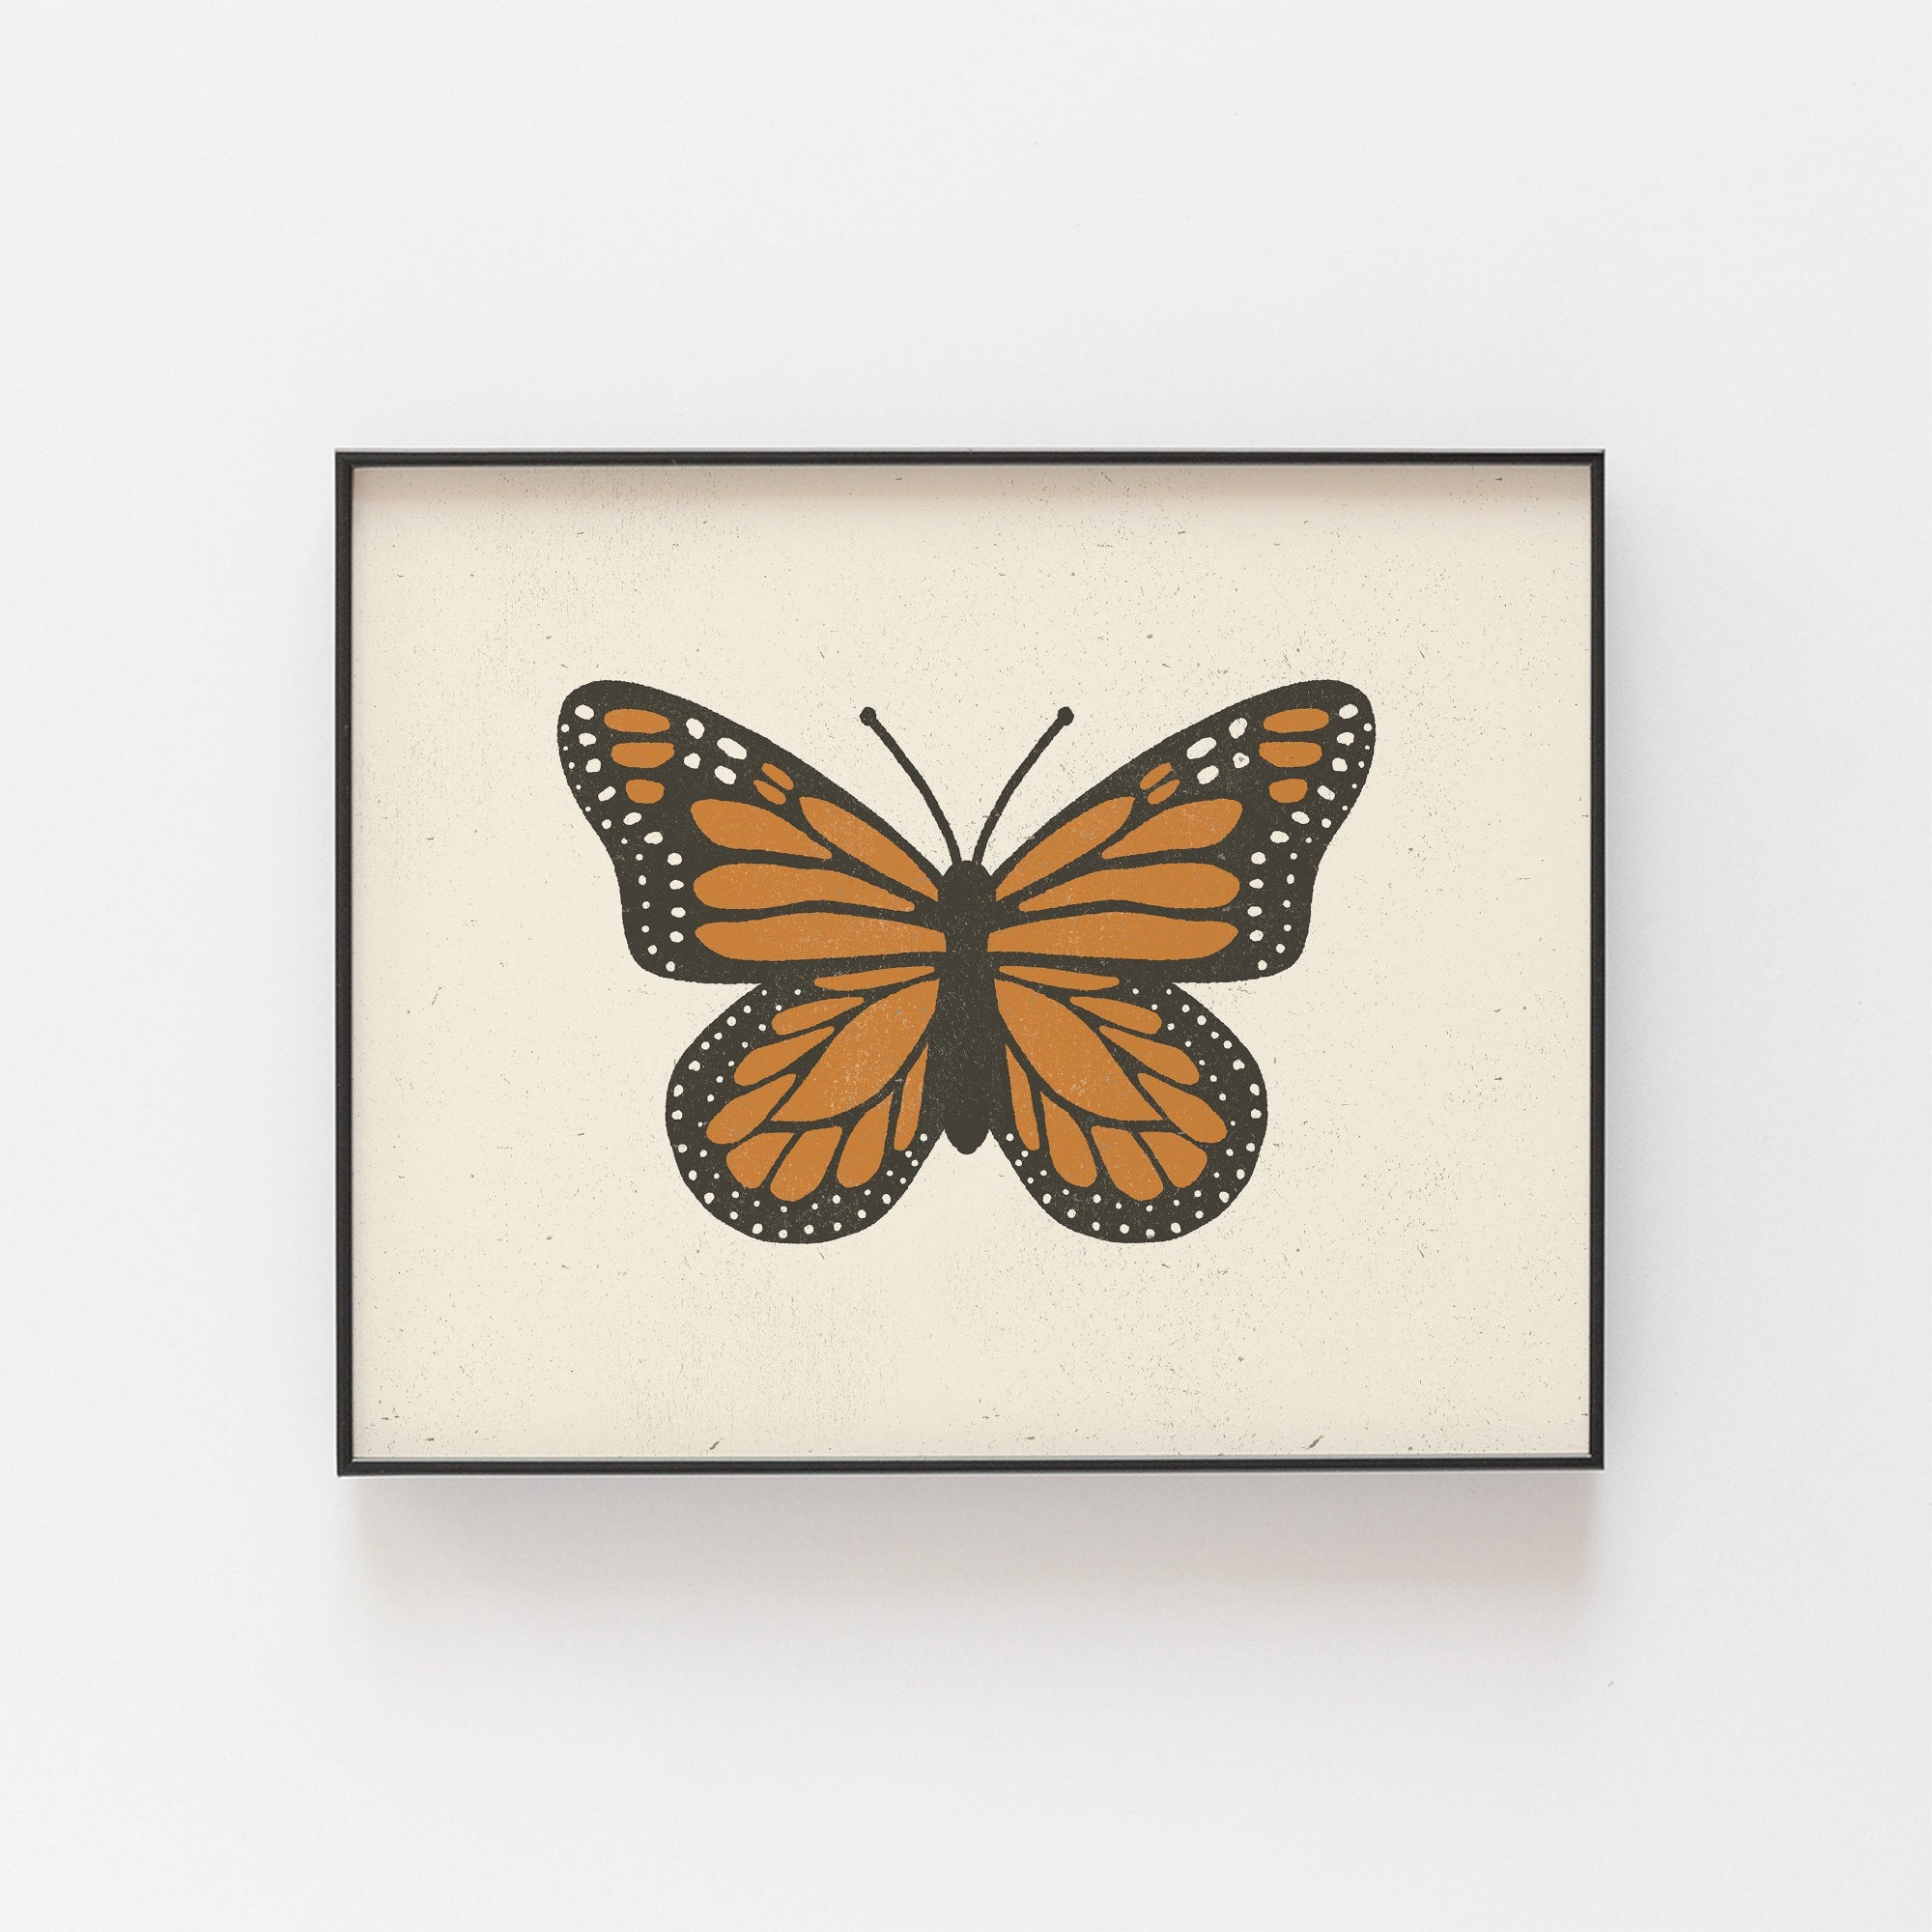 Monarch Butterfly Wall Art Print | Minimalist Art | Monarch Art | Butterfly Art | Vintage Art | Nature Art | 5x7 8x10 11x14